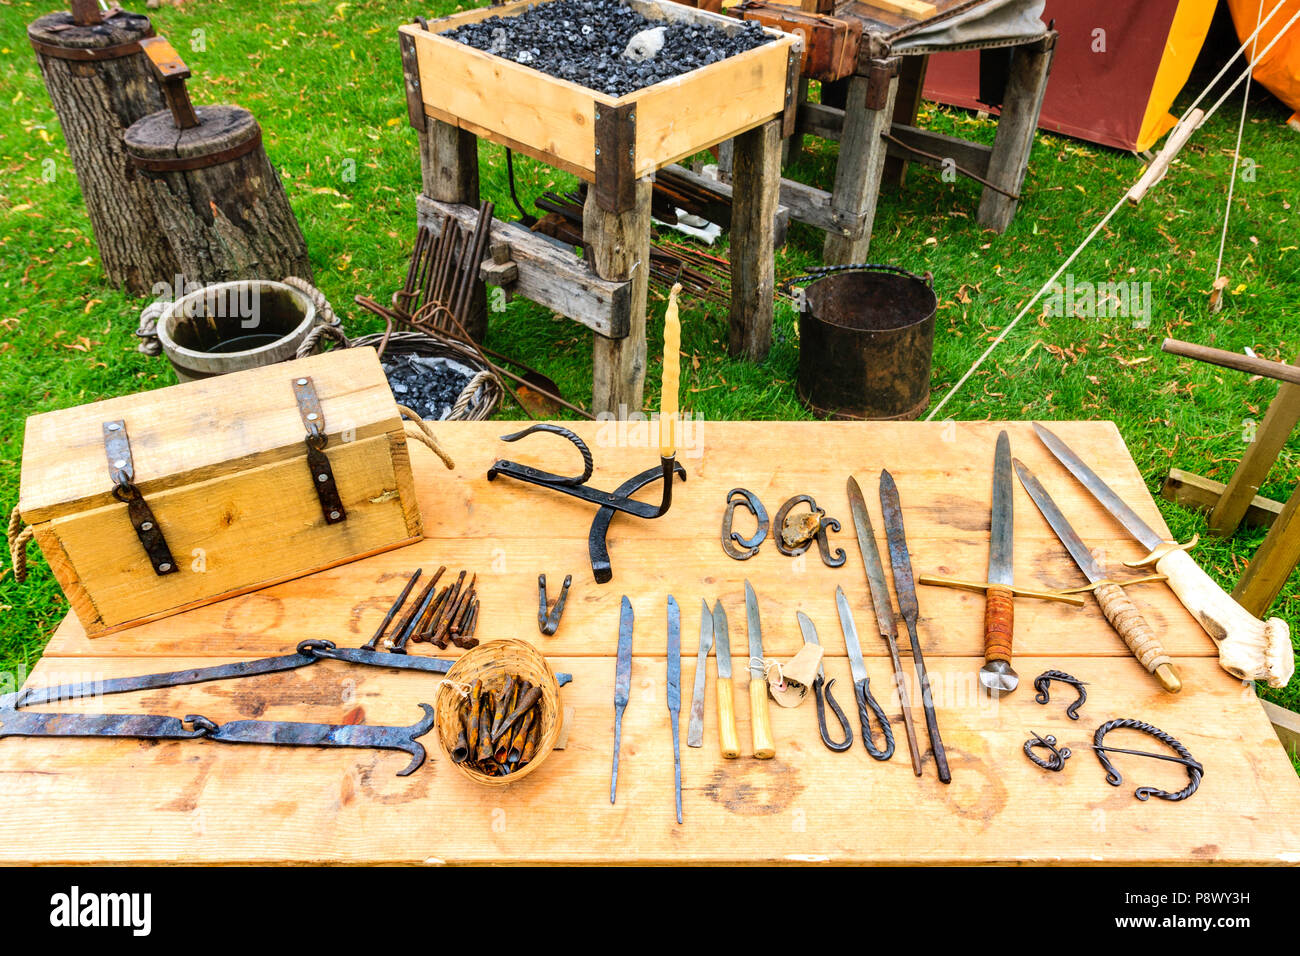 Re-enactment, living history. Display on table of various tools that are made by medieval blacksmith, knifes, tools and daggers. - Stock Image